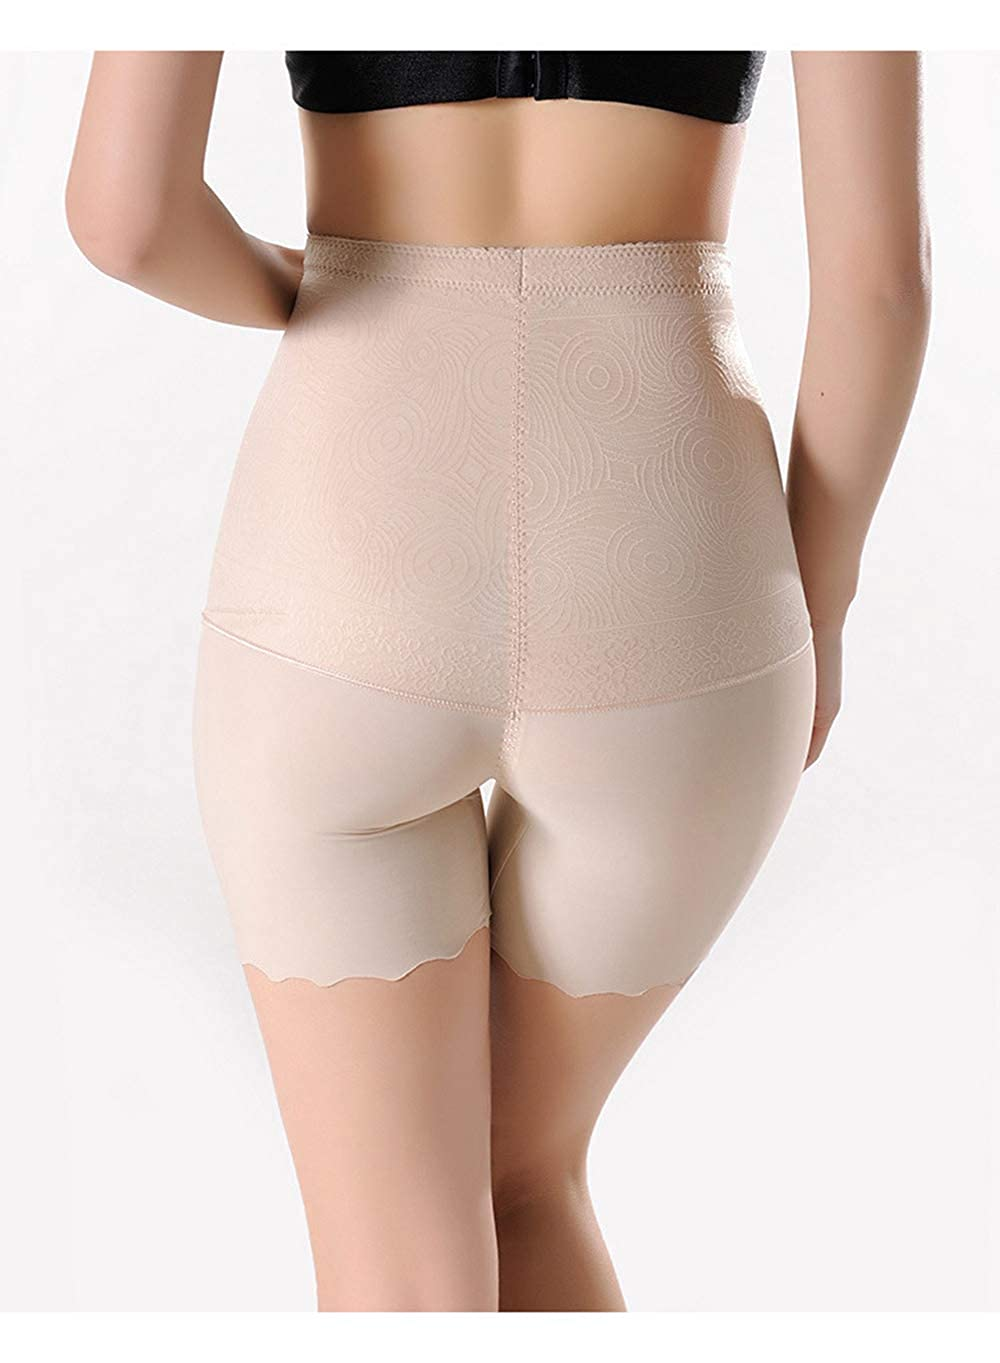 Fadfed 2Pcs Womens High Waist Anti-Light Aafety Pants Smooth Slip Short Shaper Slimmer Undershorts